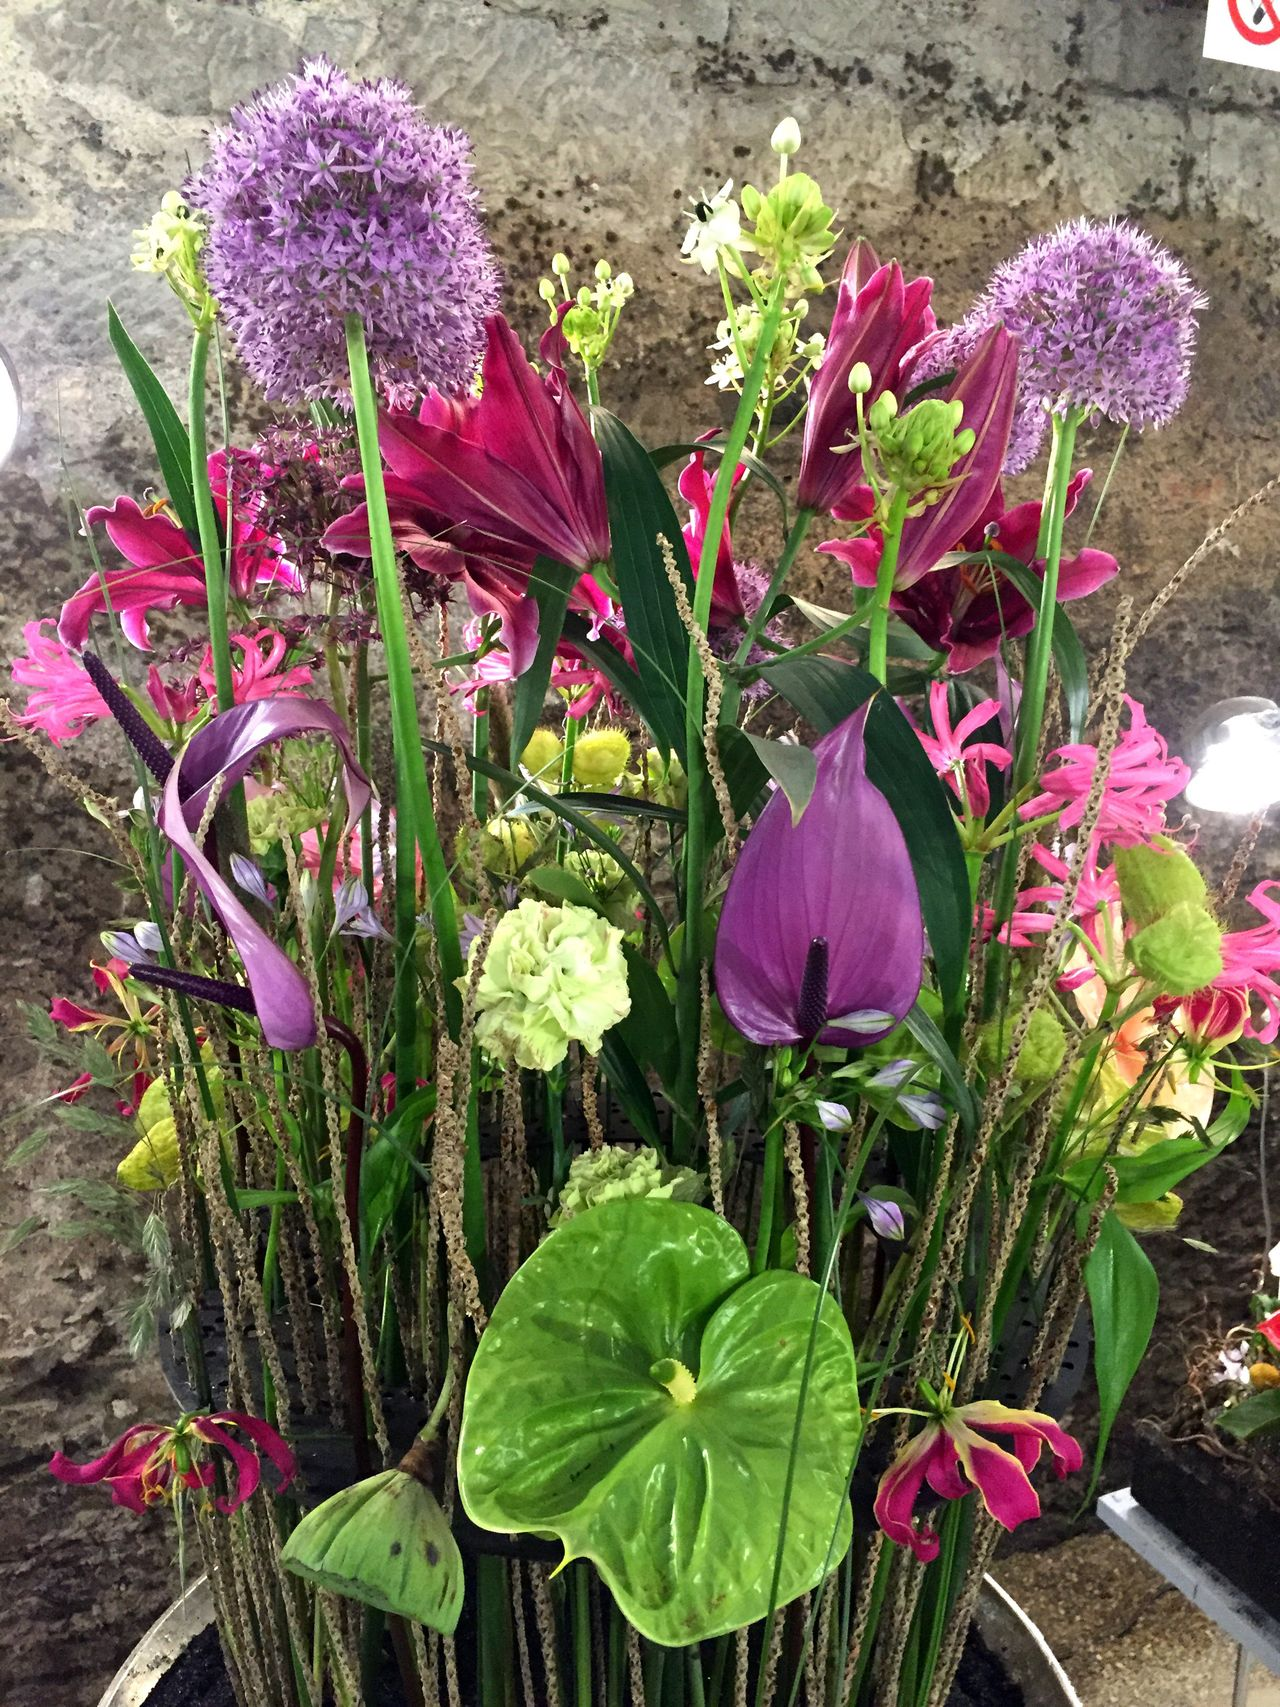 Flower decoration Flower Fragility Freshness Petal Beauty In Nature Nature Growth Plant Flower Head Blooming Purple Pink Color High Angle View Green Color No People Outdoors Day Close-up Crocus Flower Arrangement Valentine's Day  Bouquet Plant